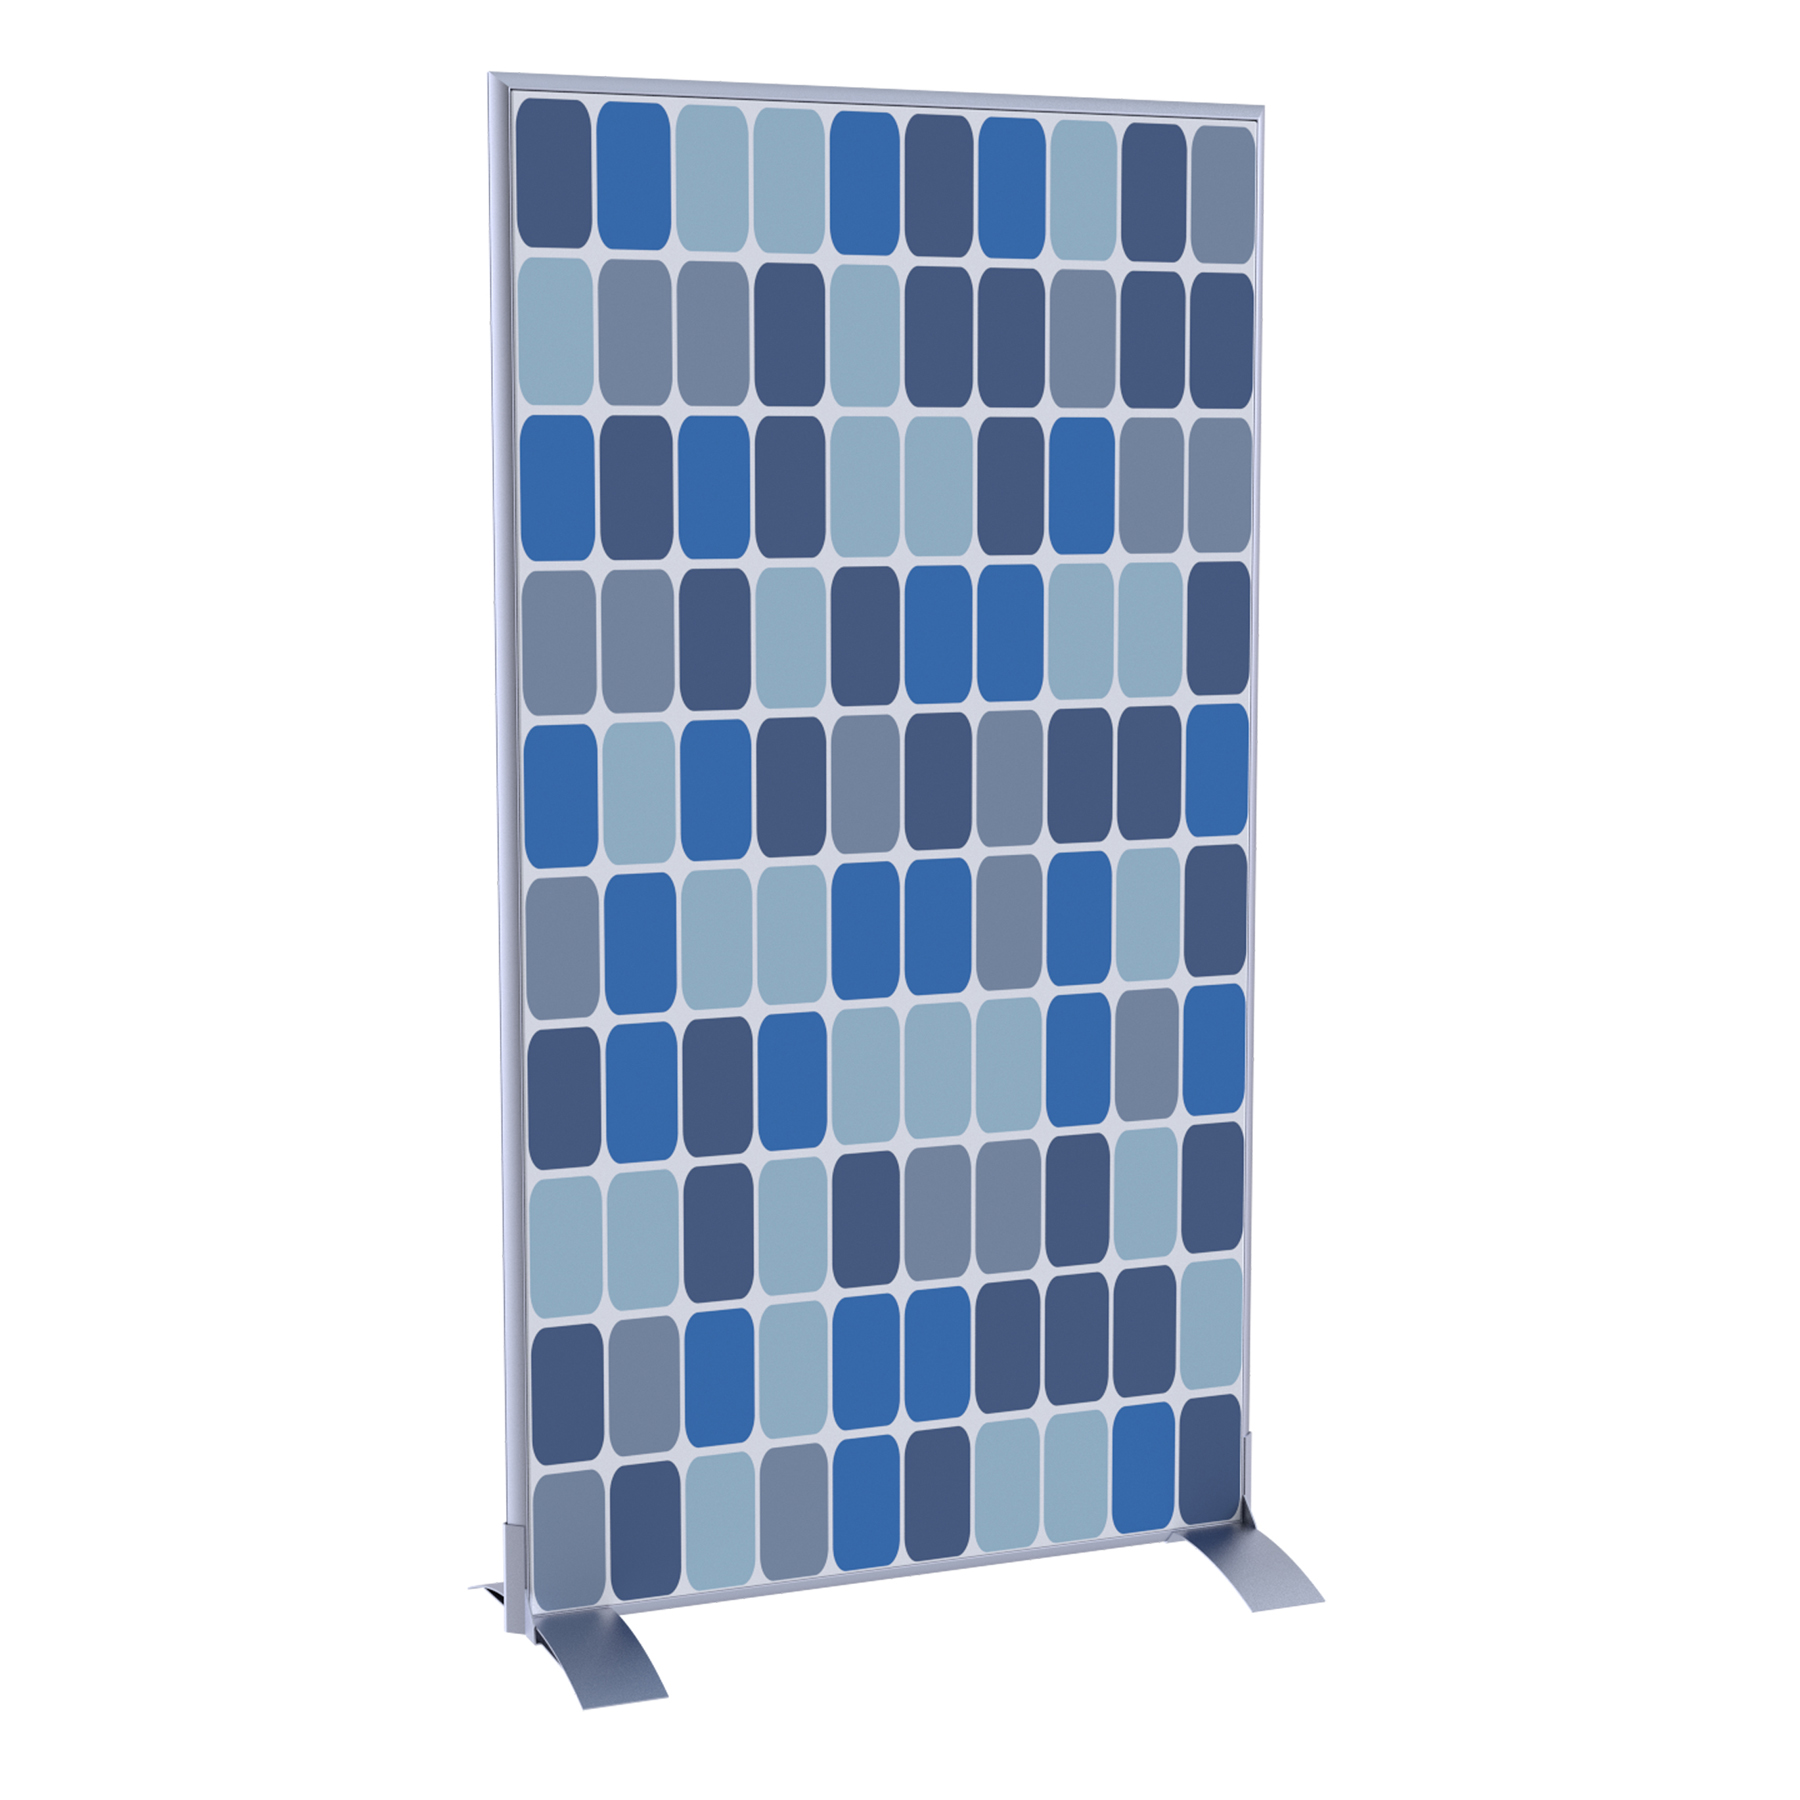 Paperflow EasyScreen Vertical Divider Screen, Blue Squares